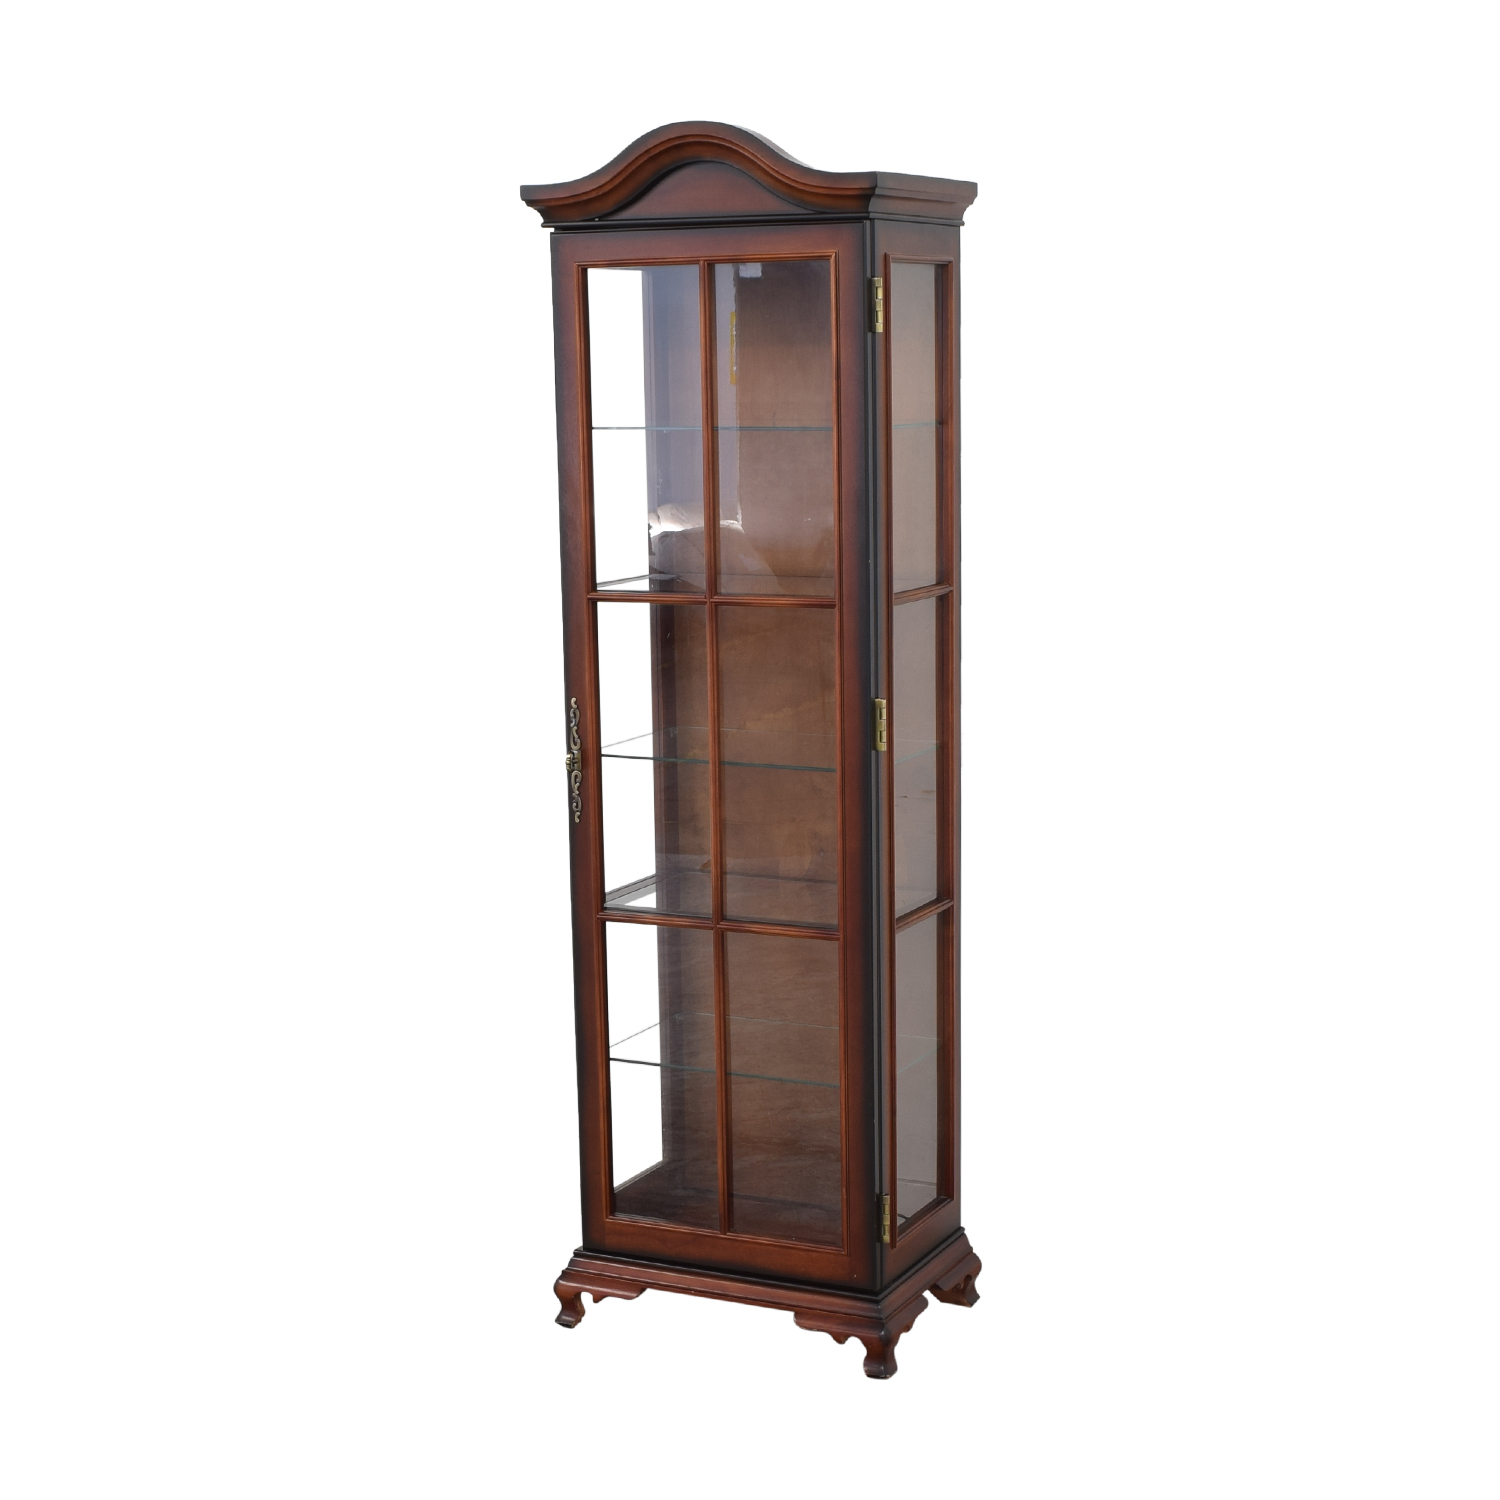 Bombay Company Cabinet / Cabinets & Sideboards